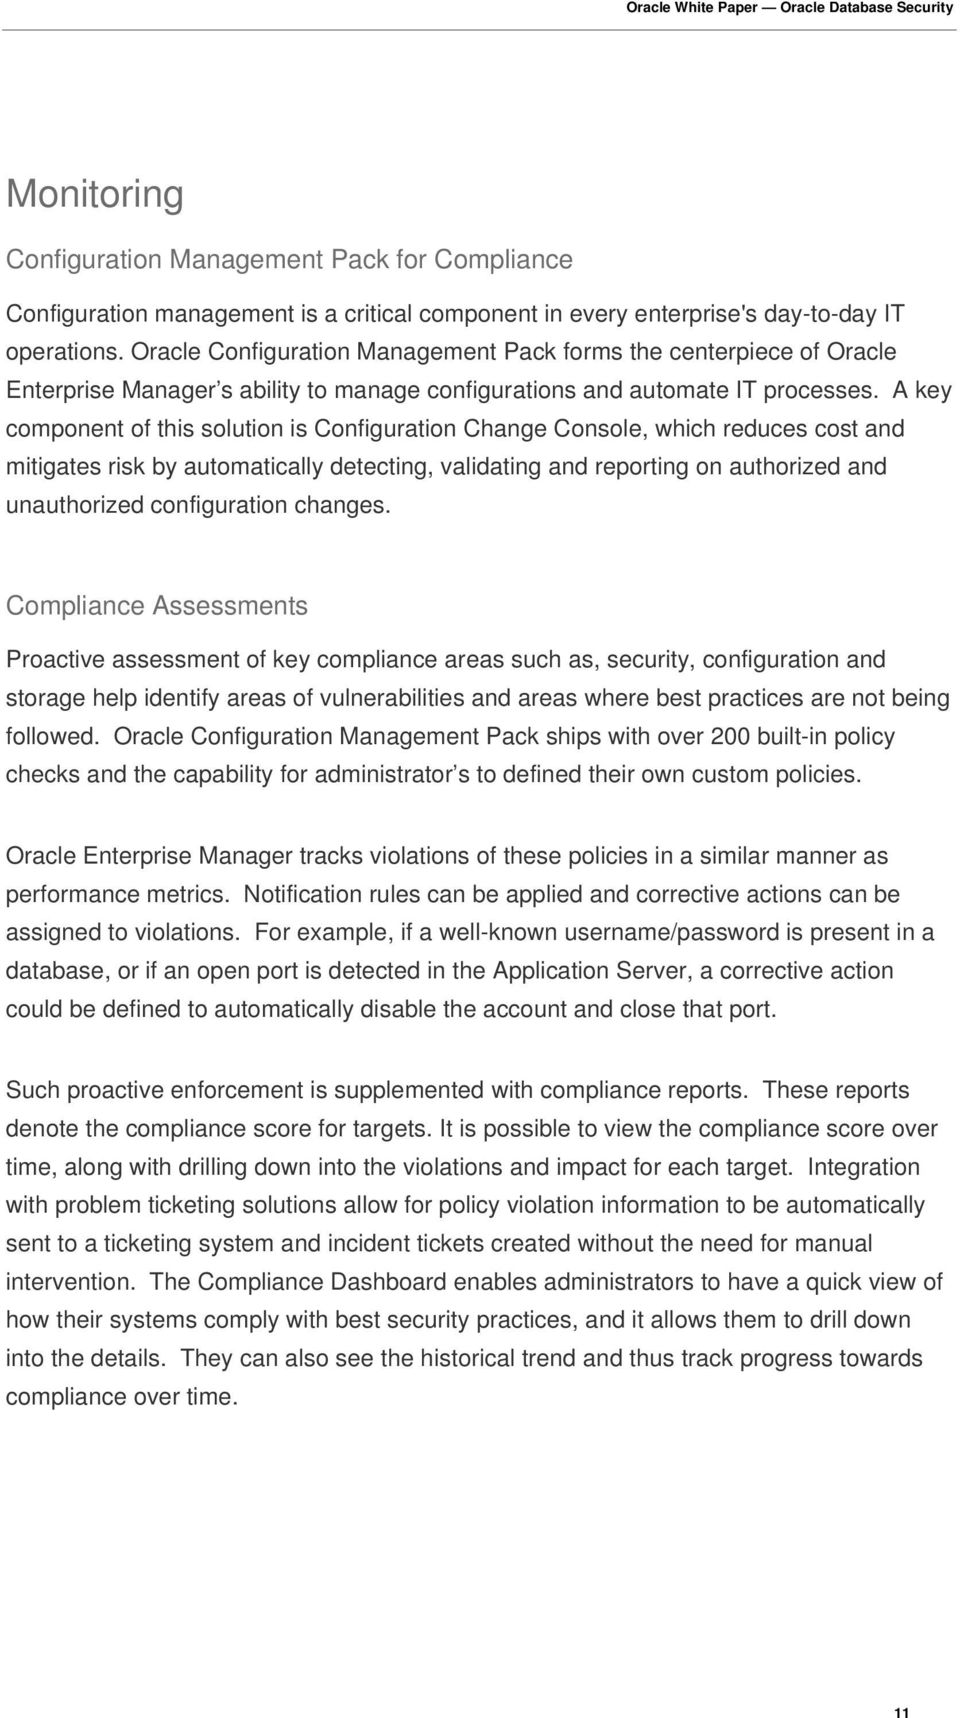 A key component of this solution is Configuration Change Console, which reduces cost and mitigates risk by automatically detecting, validating and reporting on authorized and unauthorized